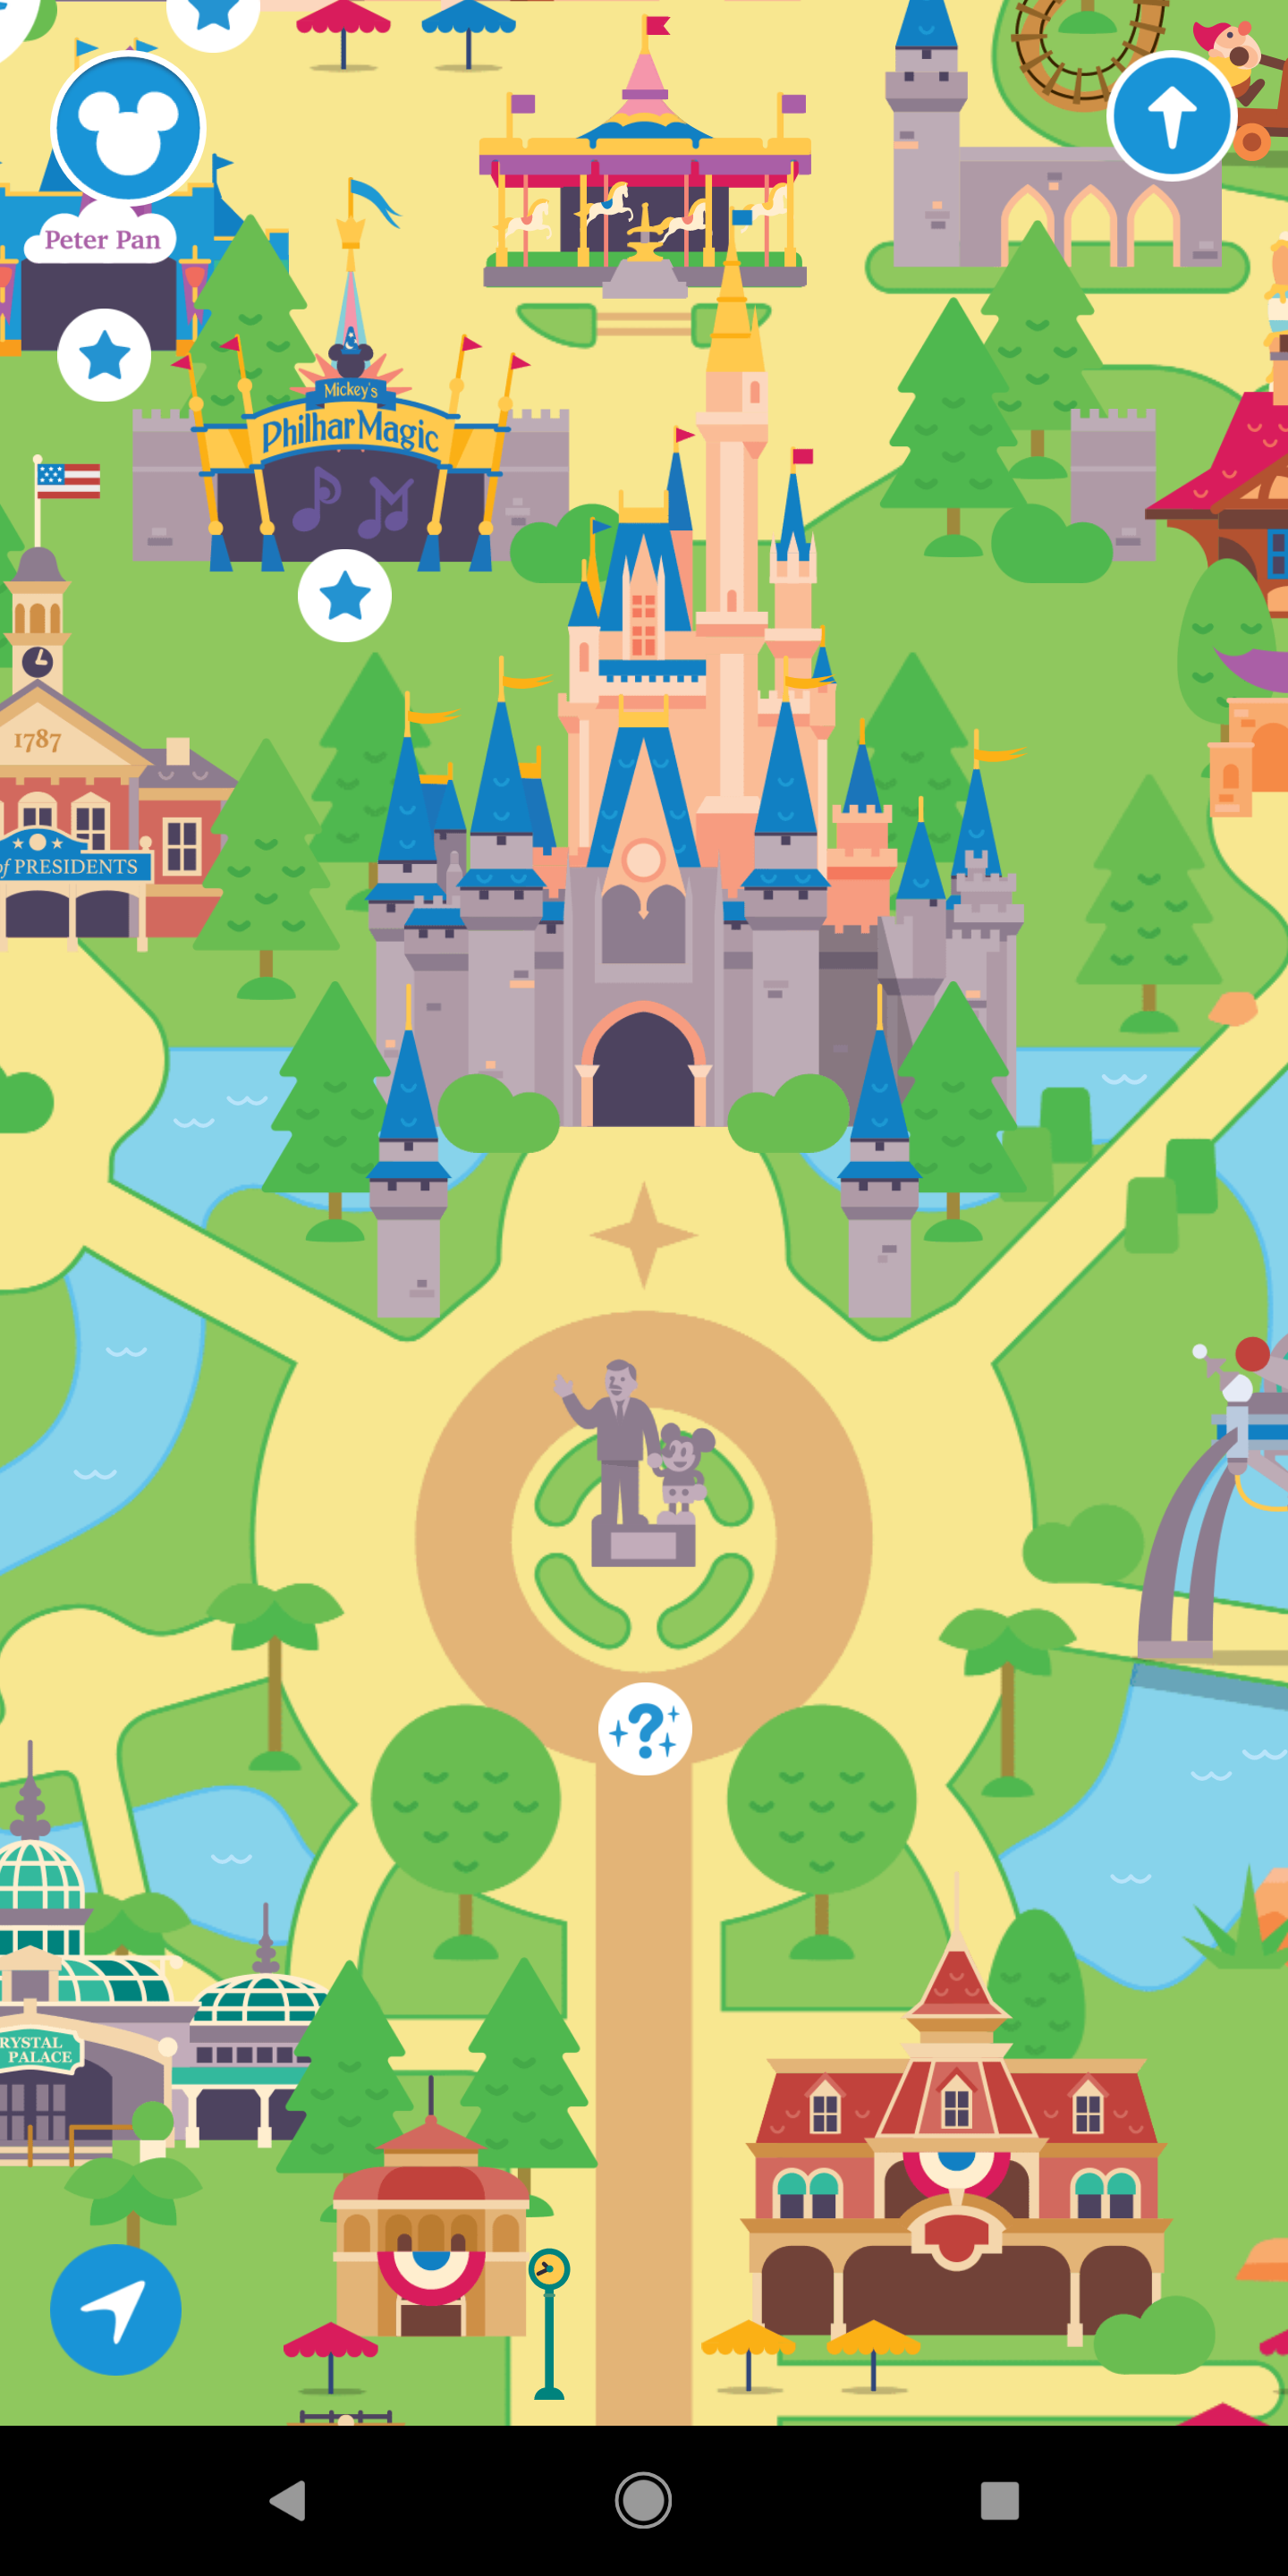 Play Disney Parks Attempts To Gamify The Experience Of Waiting In